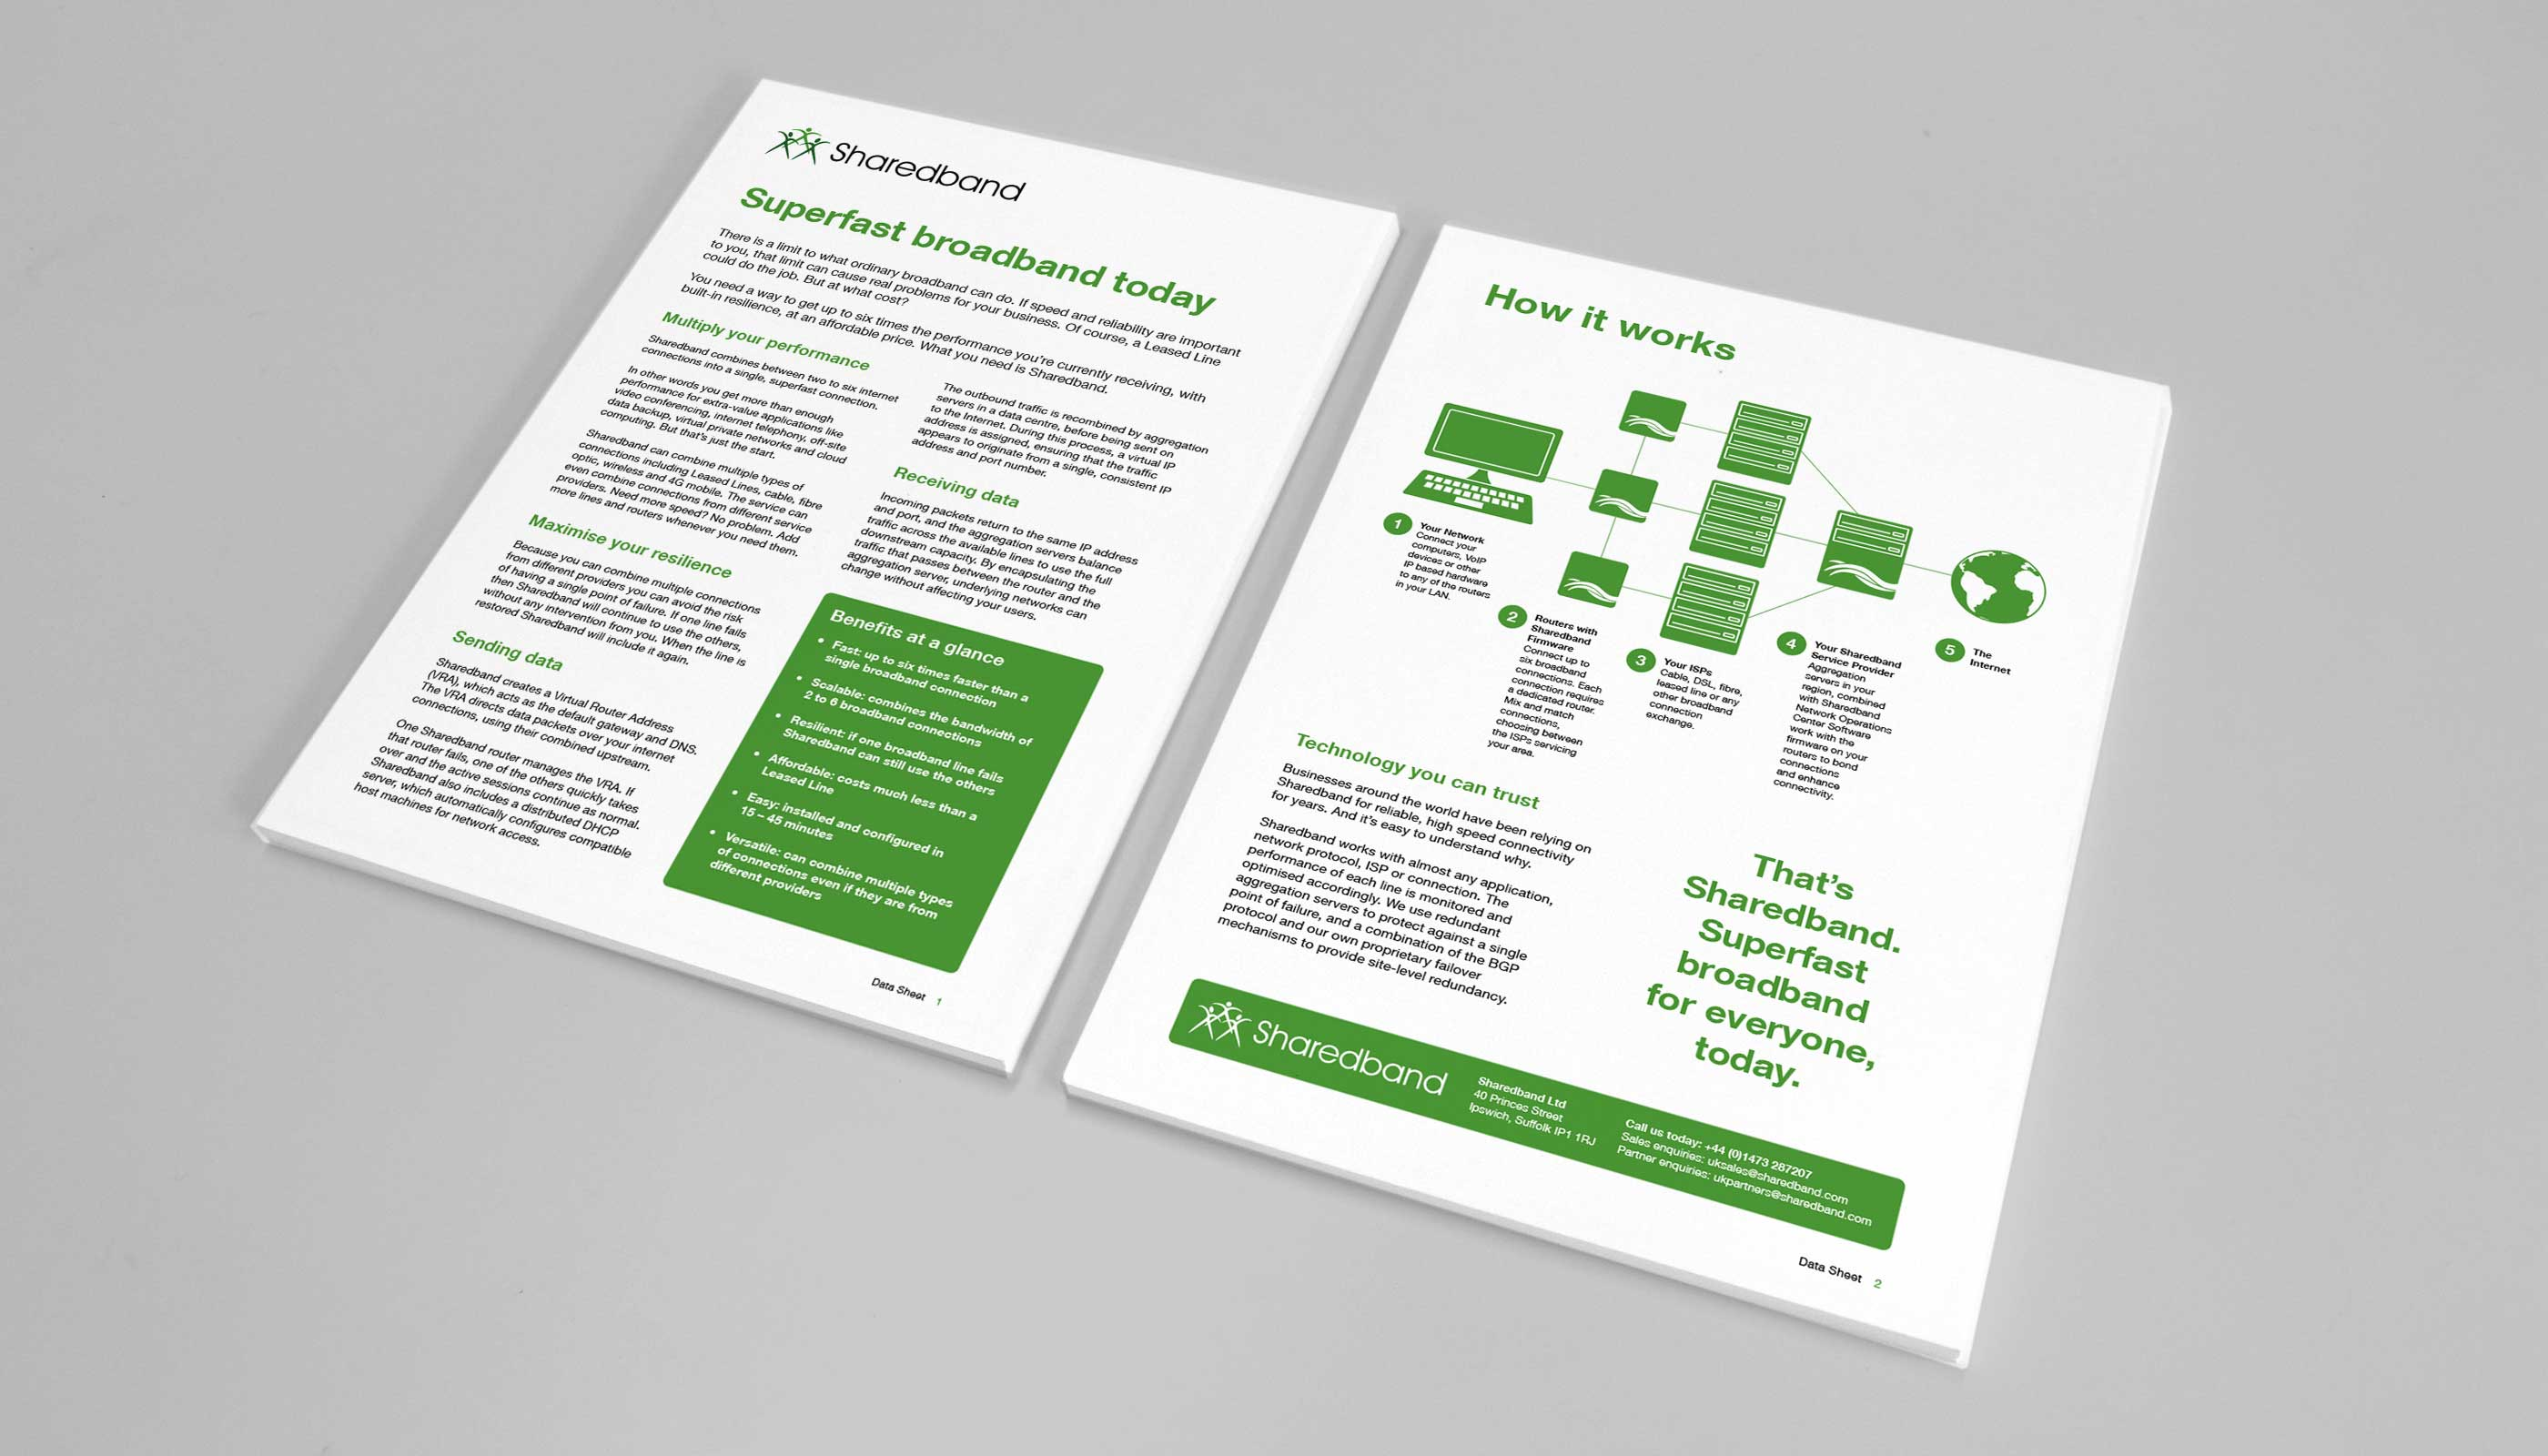 Technical data sheet designs for Sharedband in Ipswich, Suffolk.